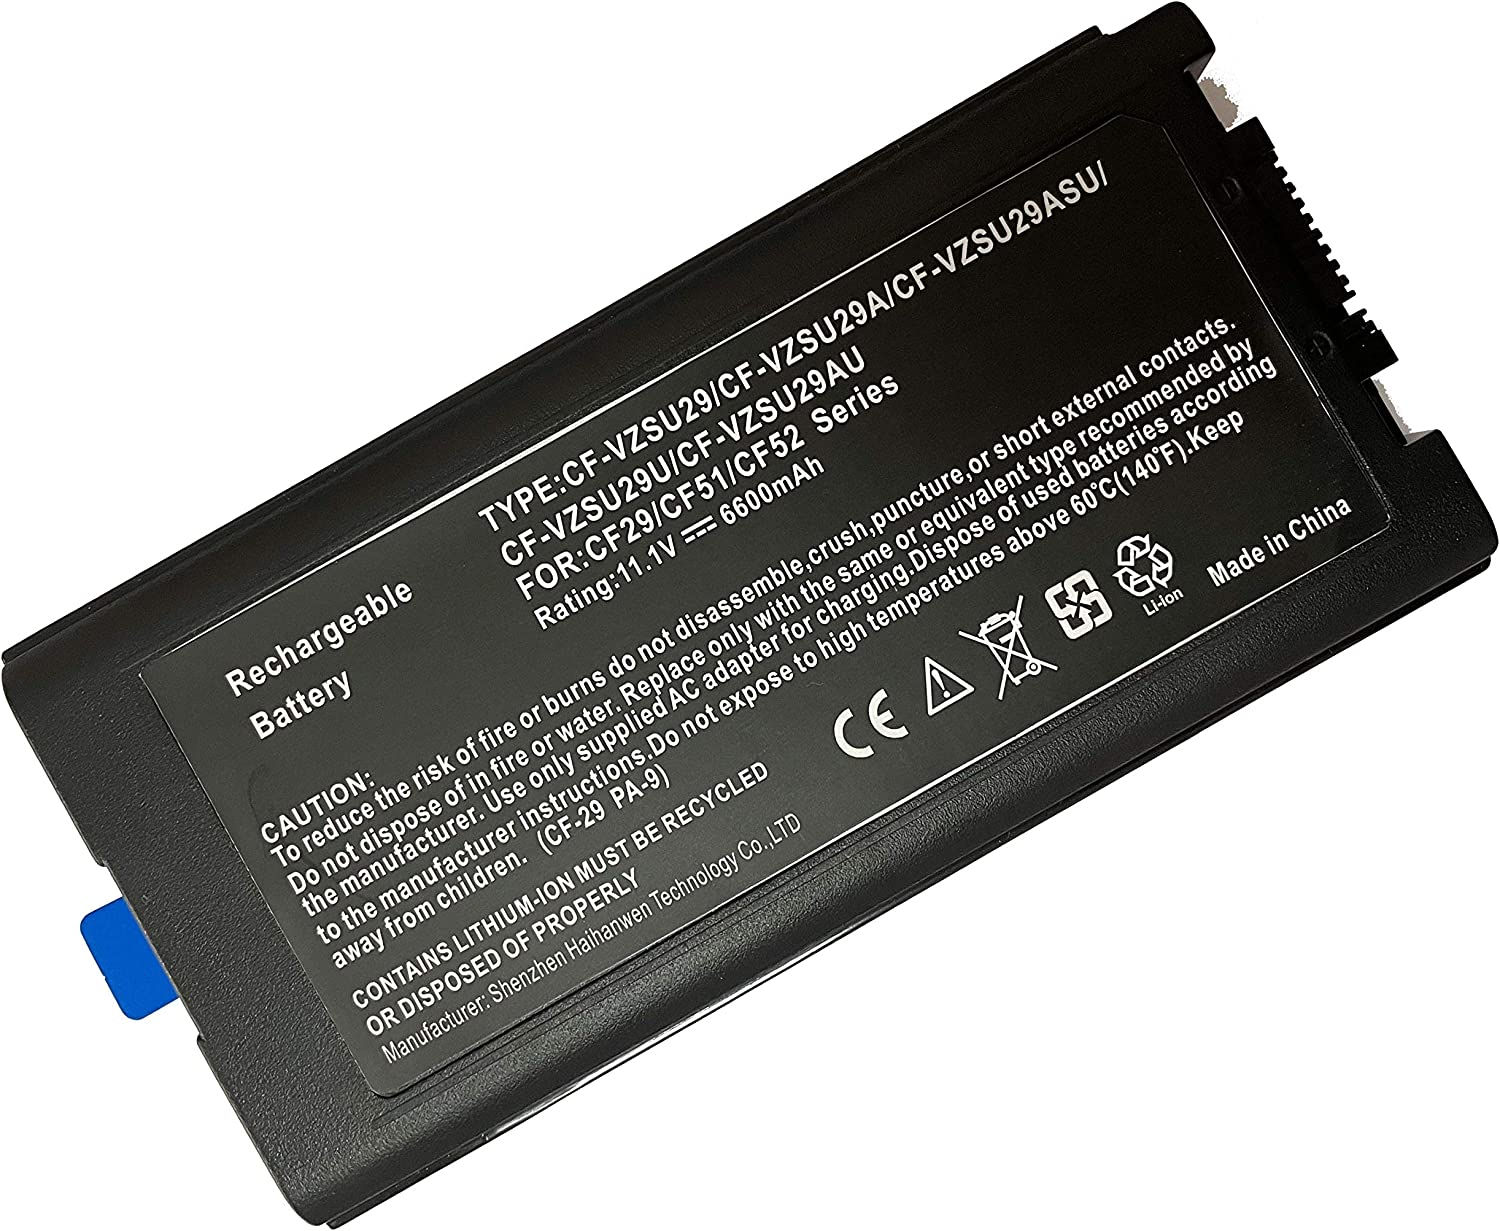 Powerforlaptop Cheap super special price Laptop Notebook Replacement CF-VZSU29 Com Battery Recommendation